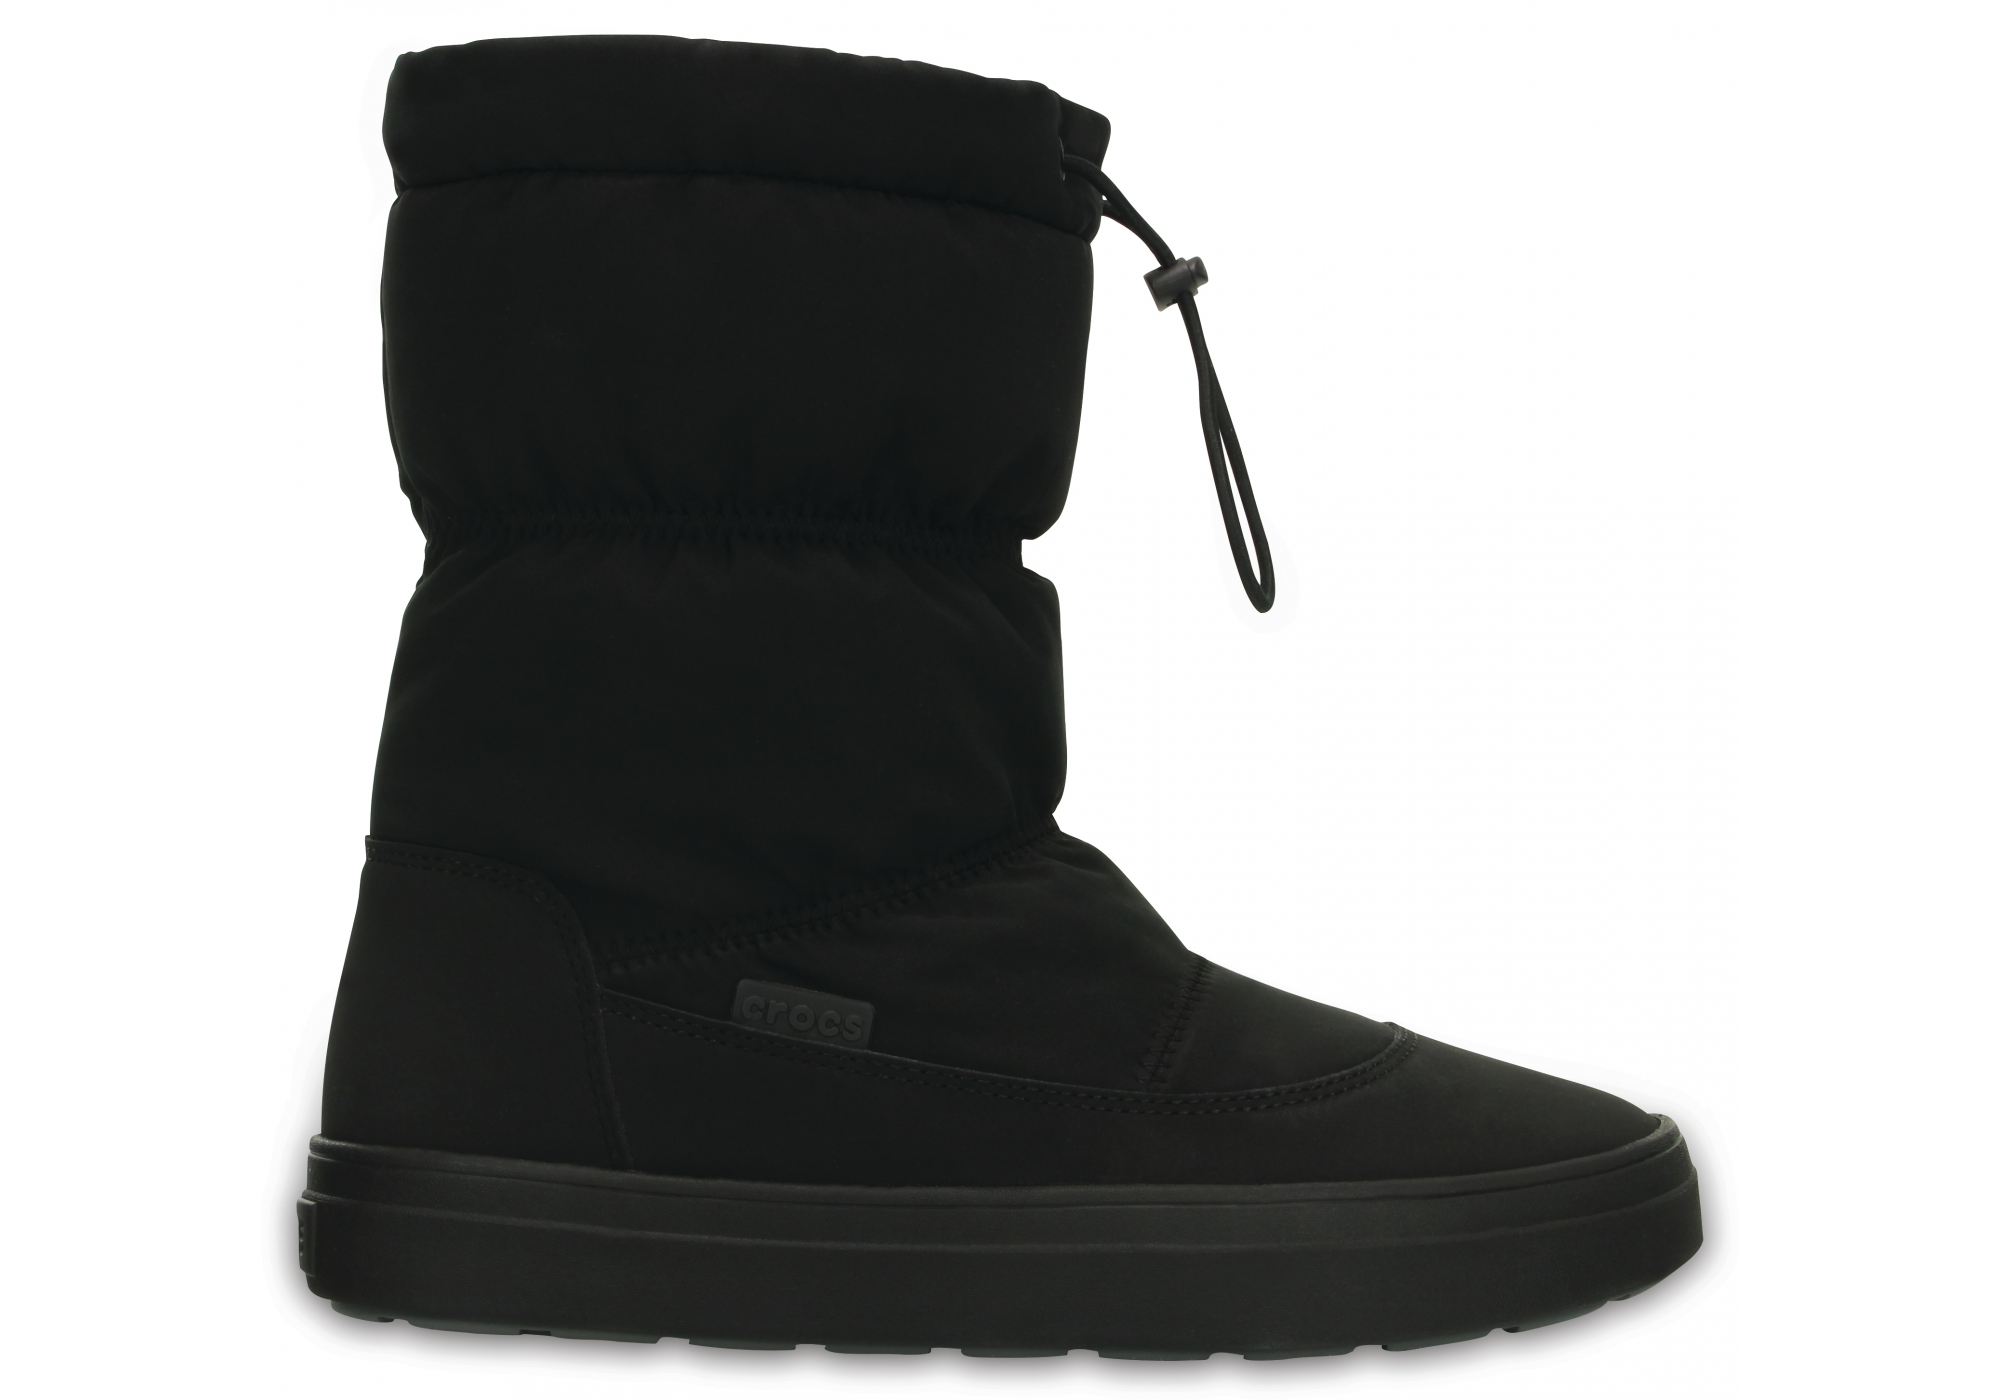 Crocs černé sněhule Lodgepoint Pull-on Boot Black - W6